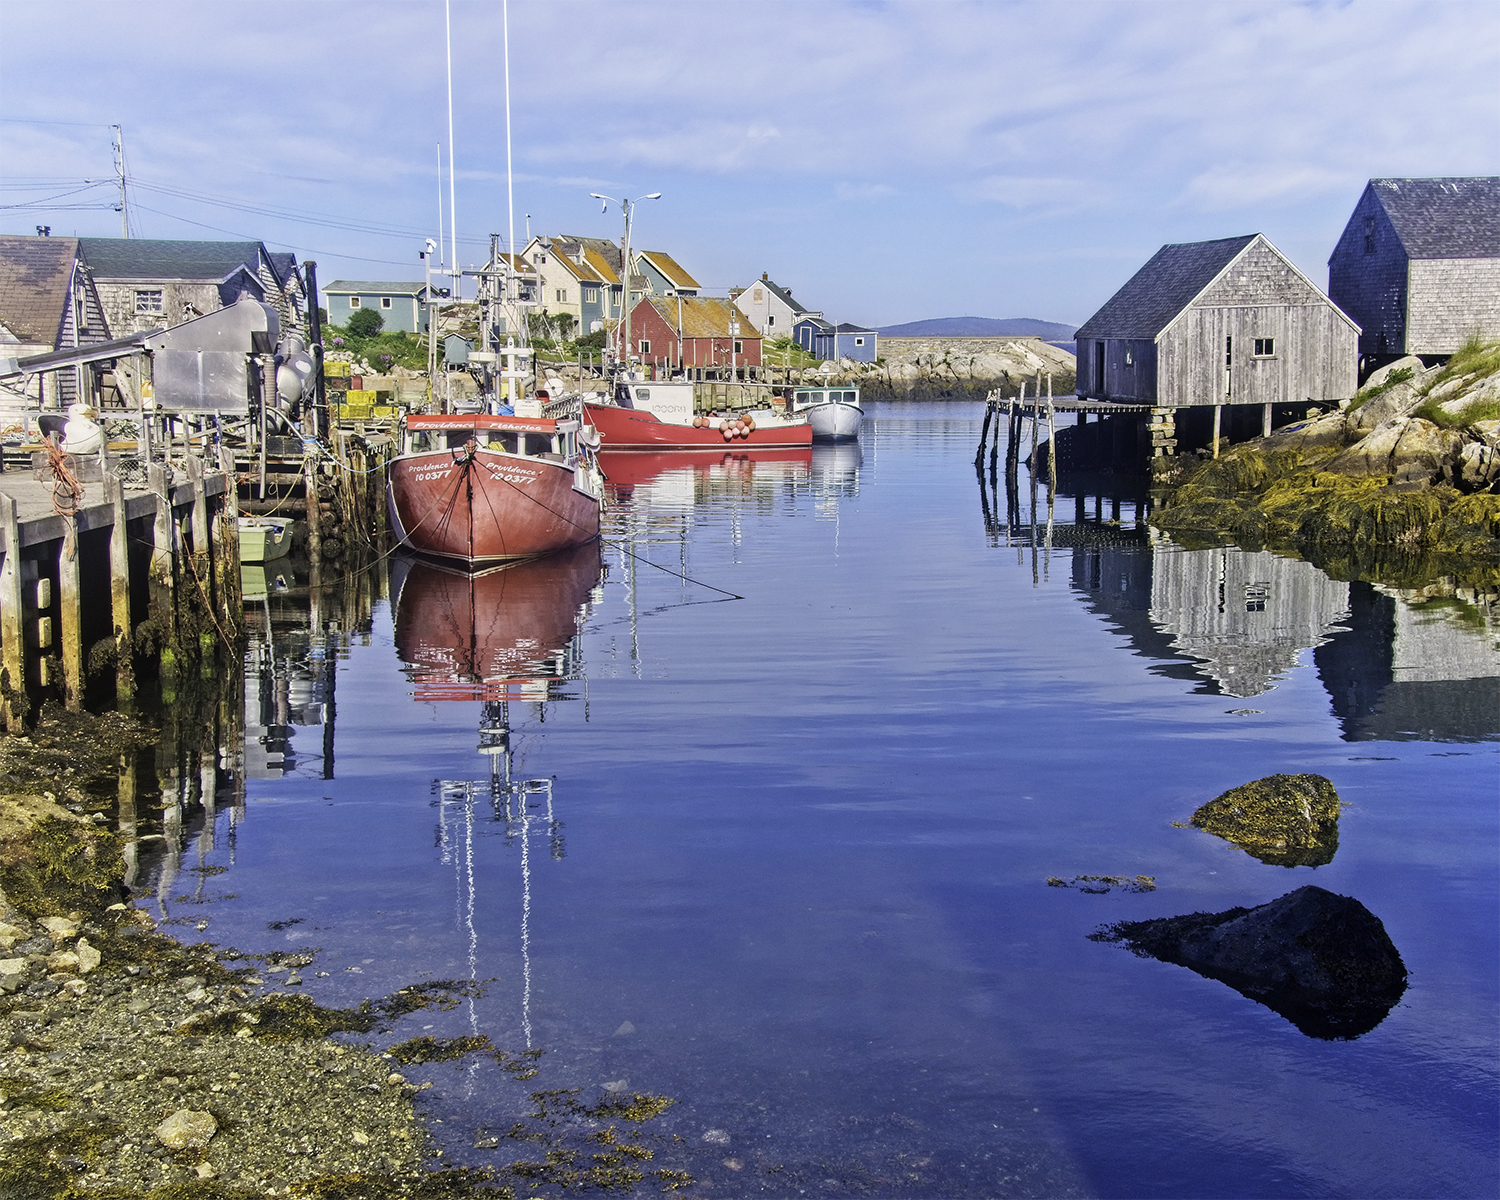 John Faber - Fishing Village - Canadian Maritimes